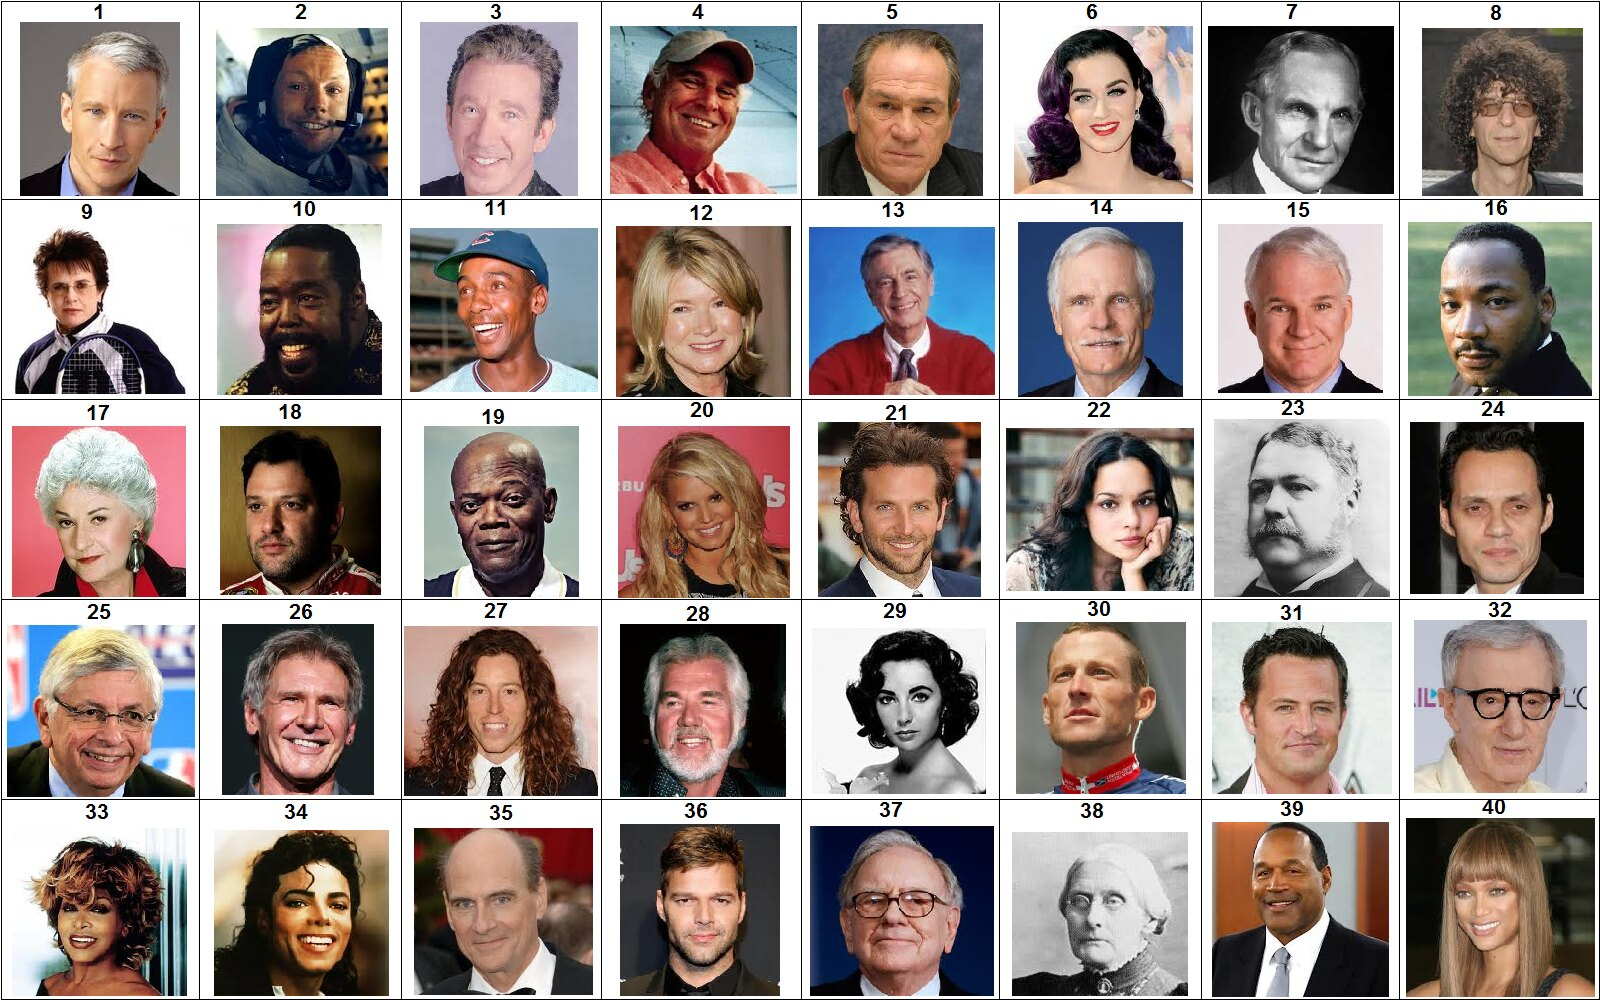 Celebrity matchmaker quiz for men